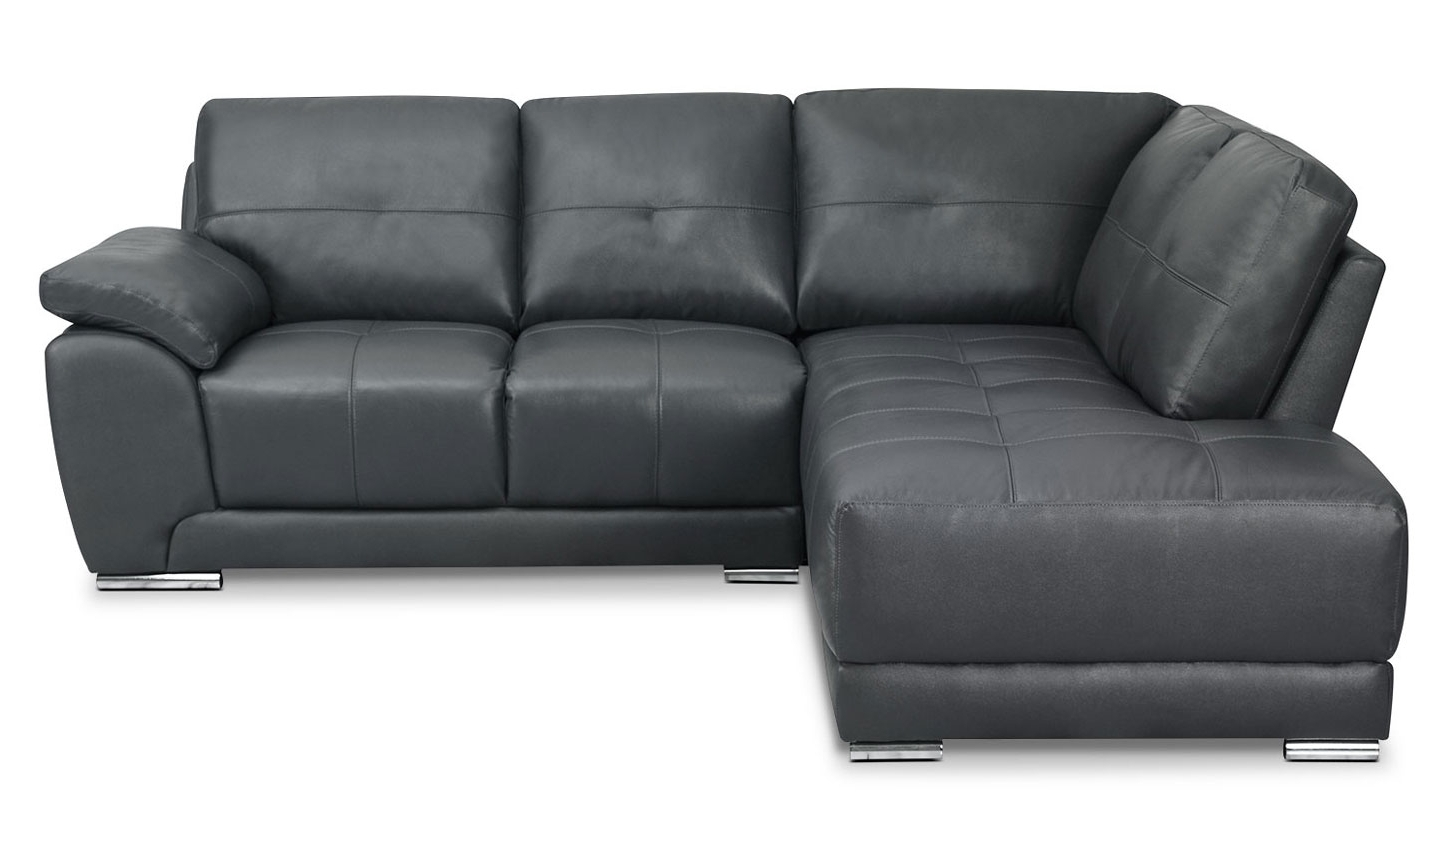 Sectional Sofa: Ultimate Gallery Of The Brick Sectional Sofa Bed Within Favorite The Brick Sectional Sofas (View 7 of 15)